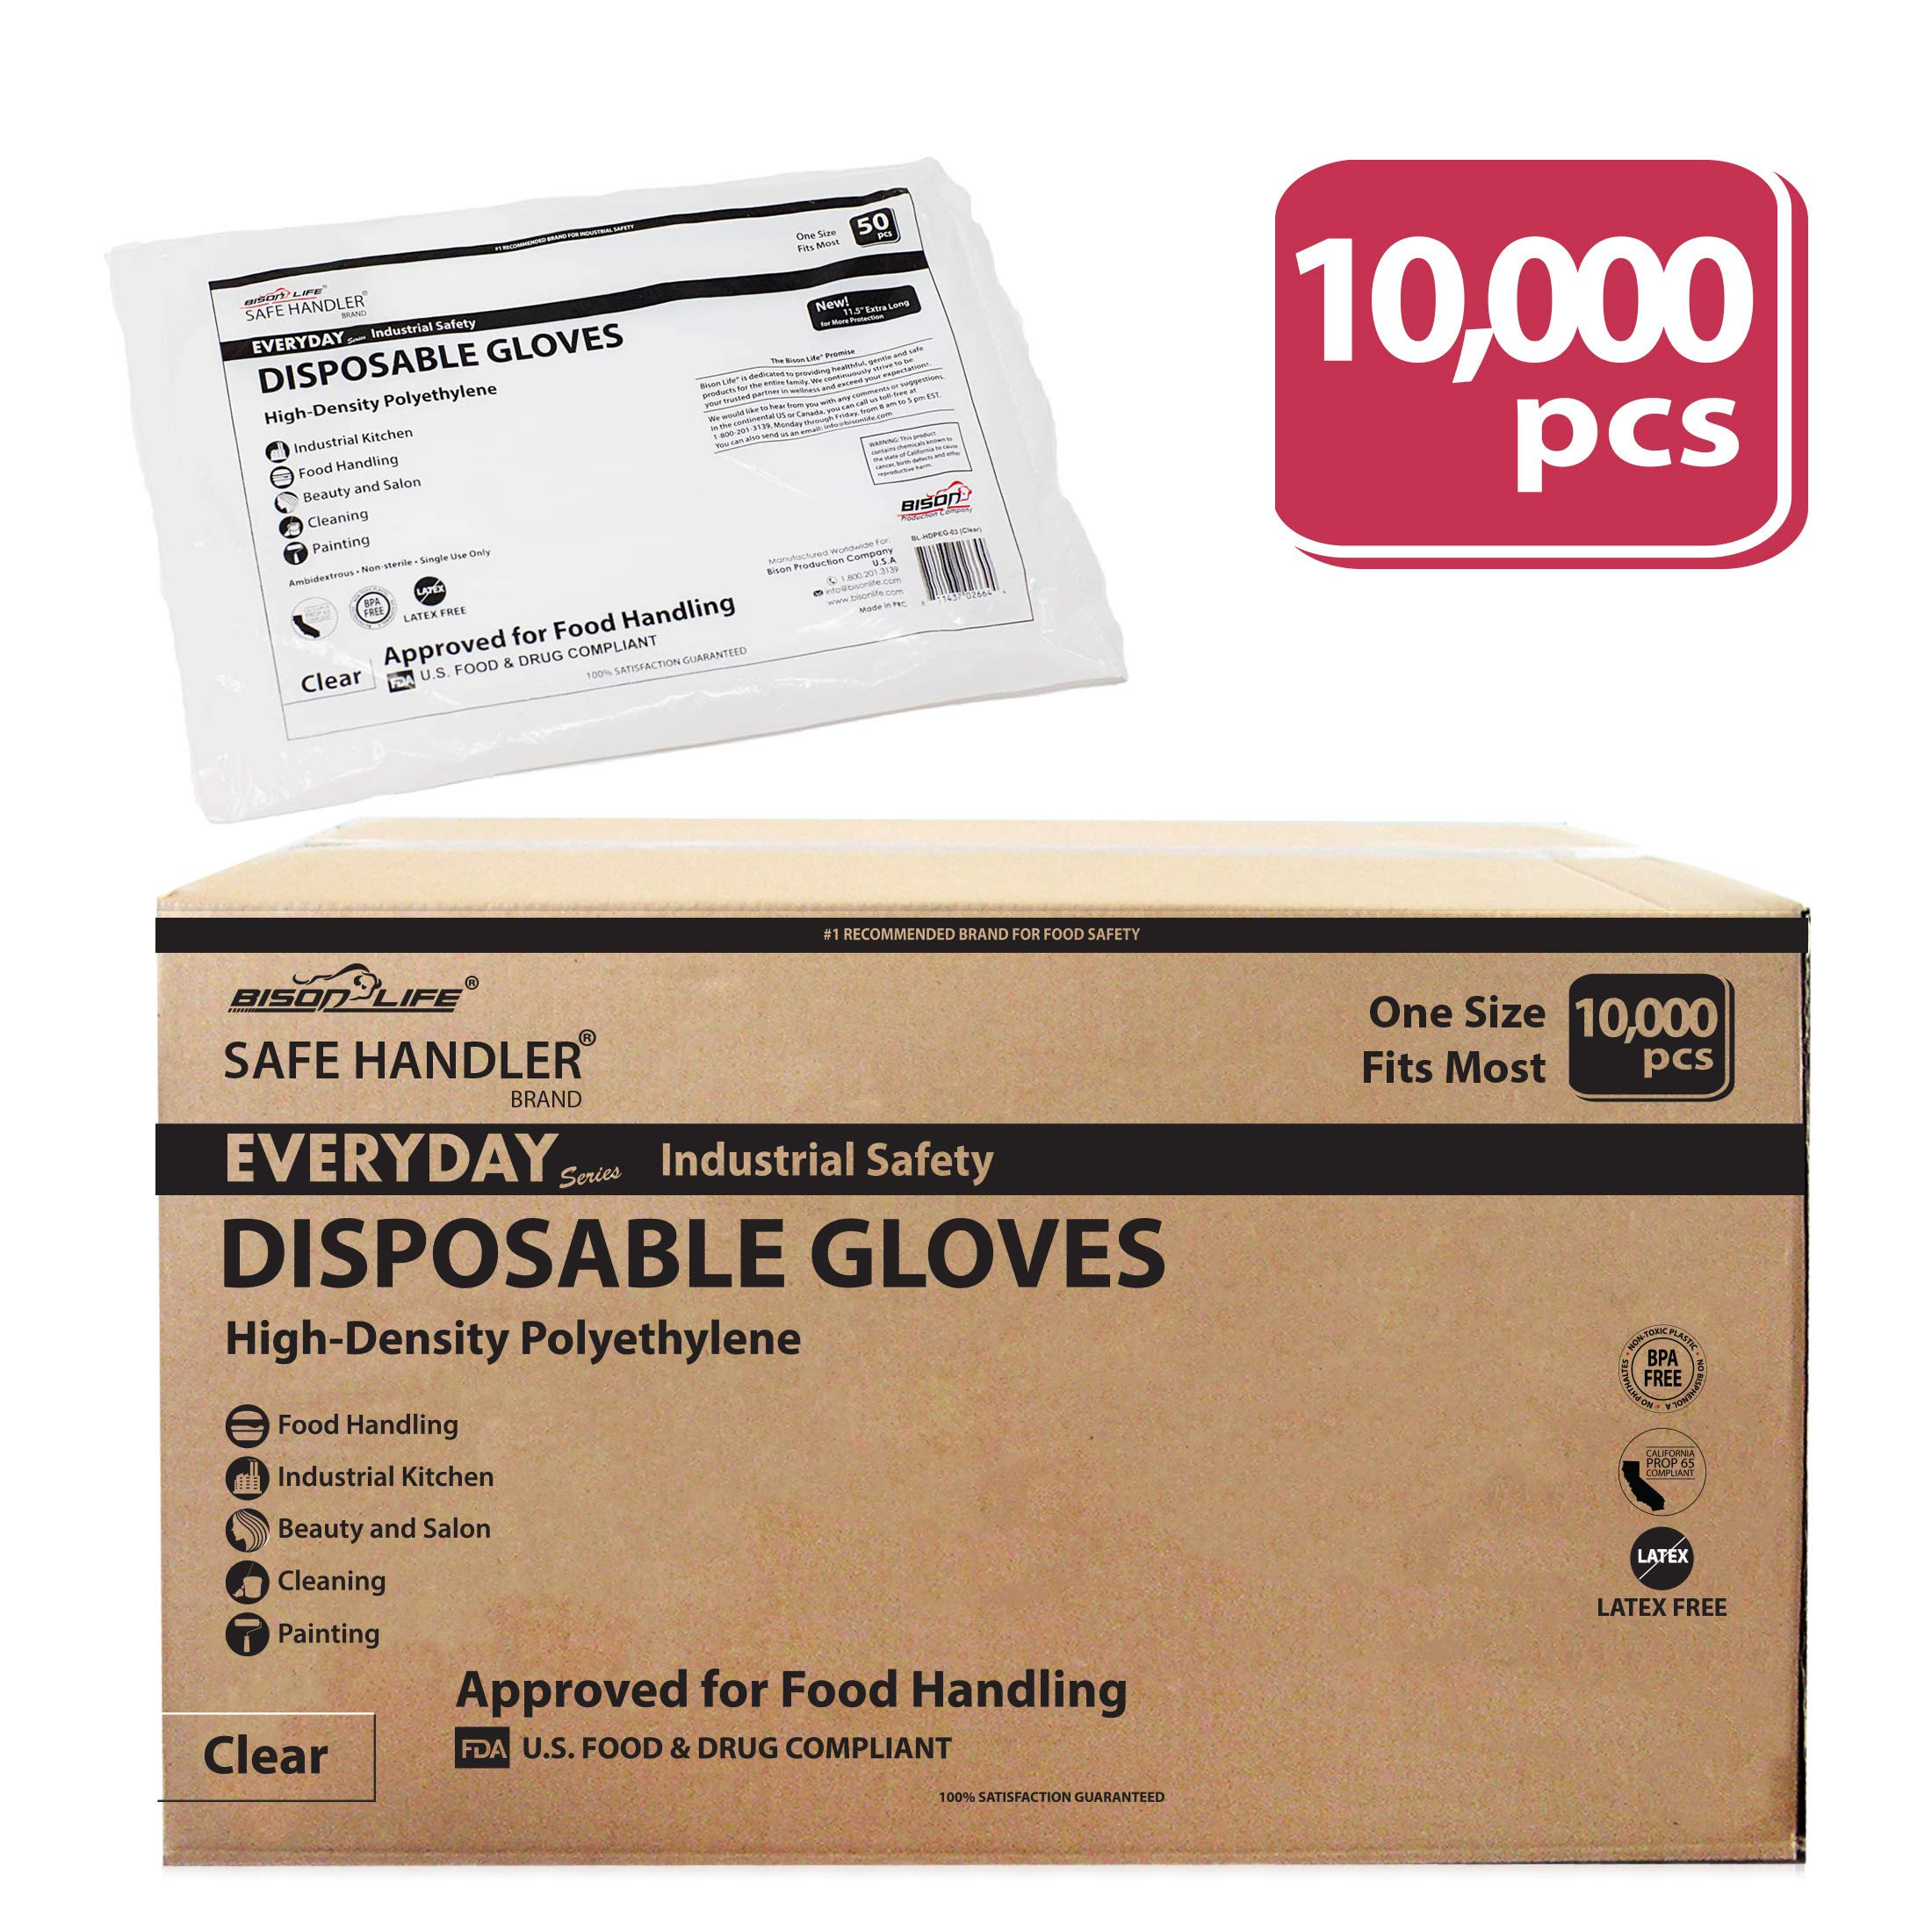 SAFE HANDLER Disposable Food Handling Long Cuff Poly Gloves | One Size Fits Most, 0.65g, 11'', 200 Packs of 50 Gloves, (10,000 Gloves Total)